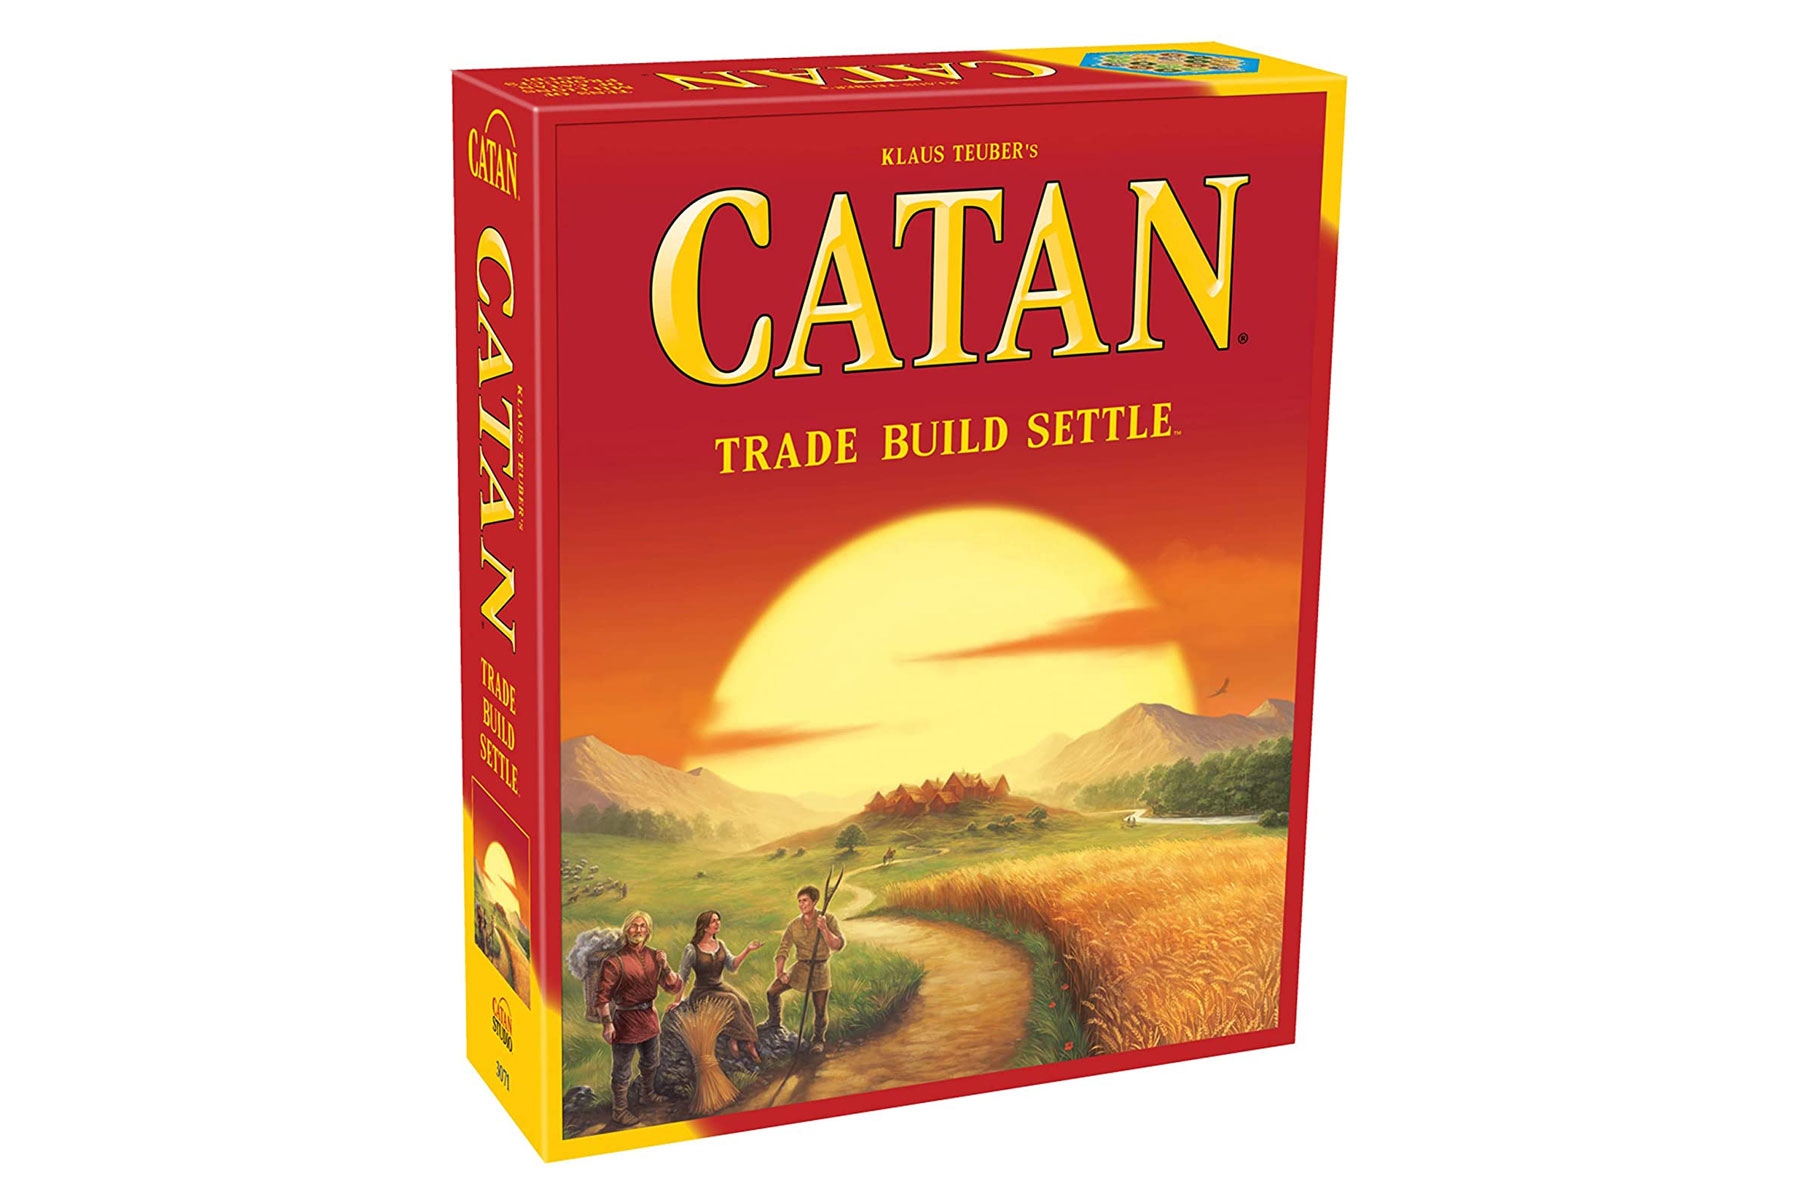 Settlers of Catan game box